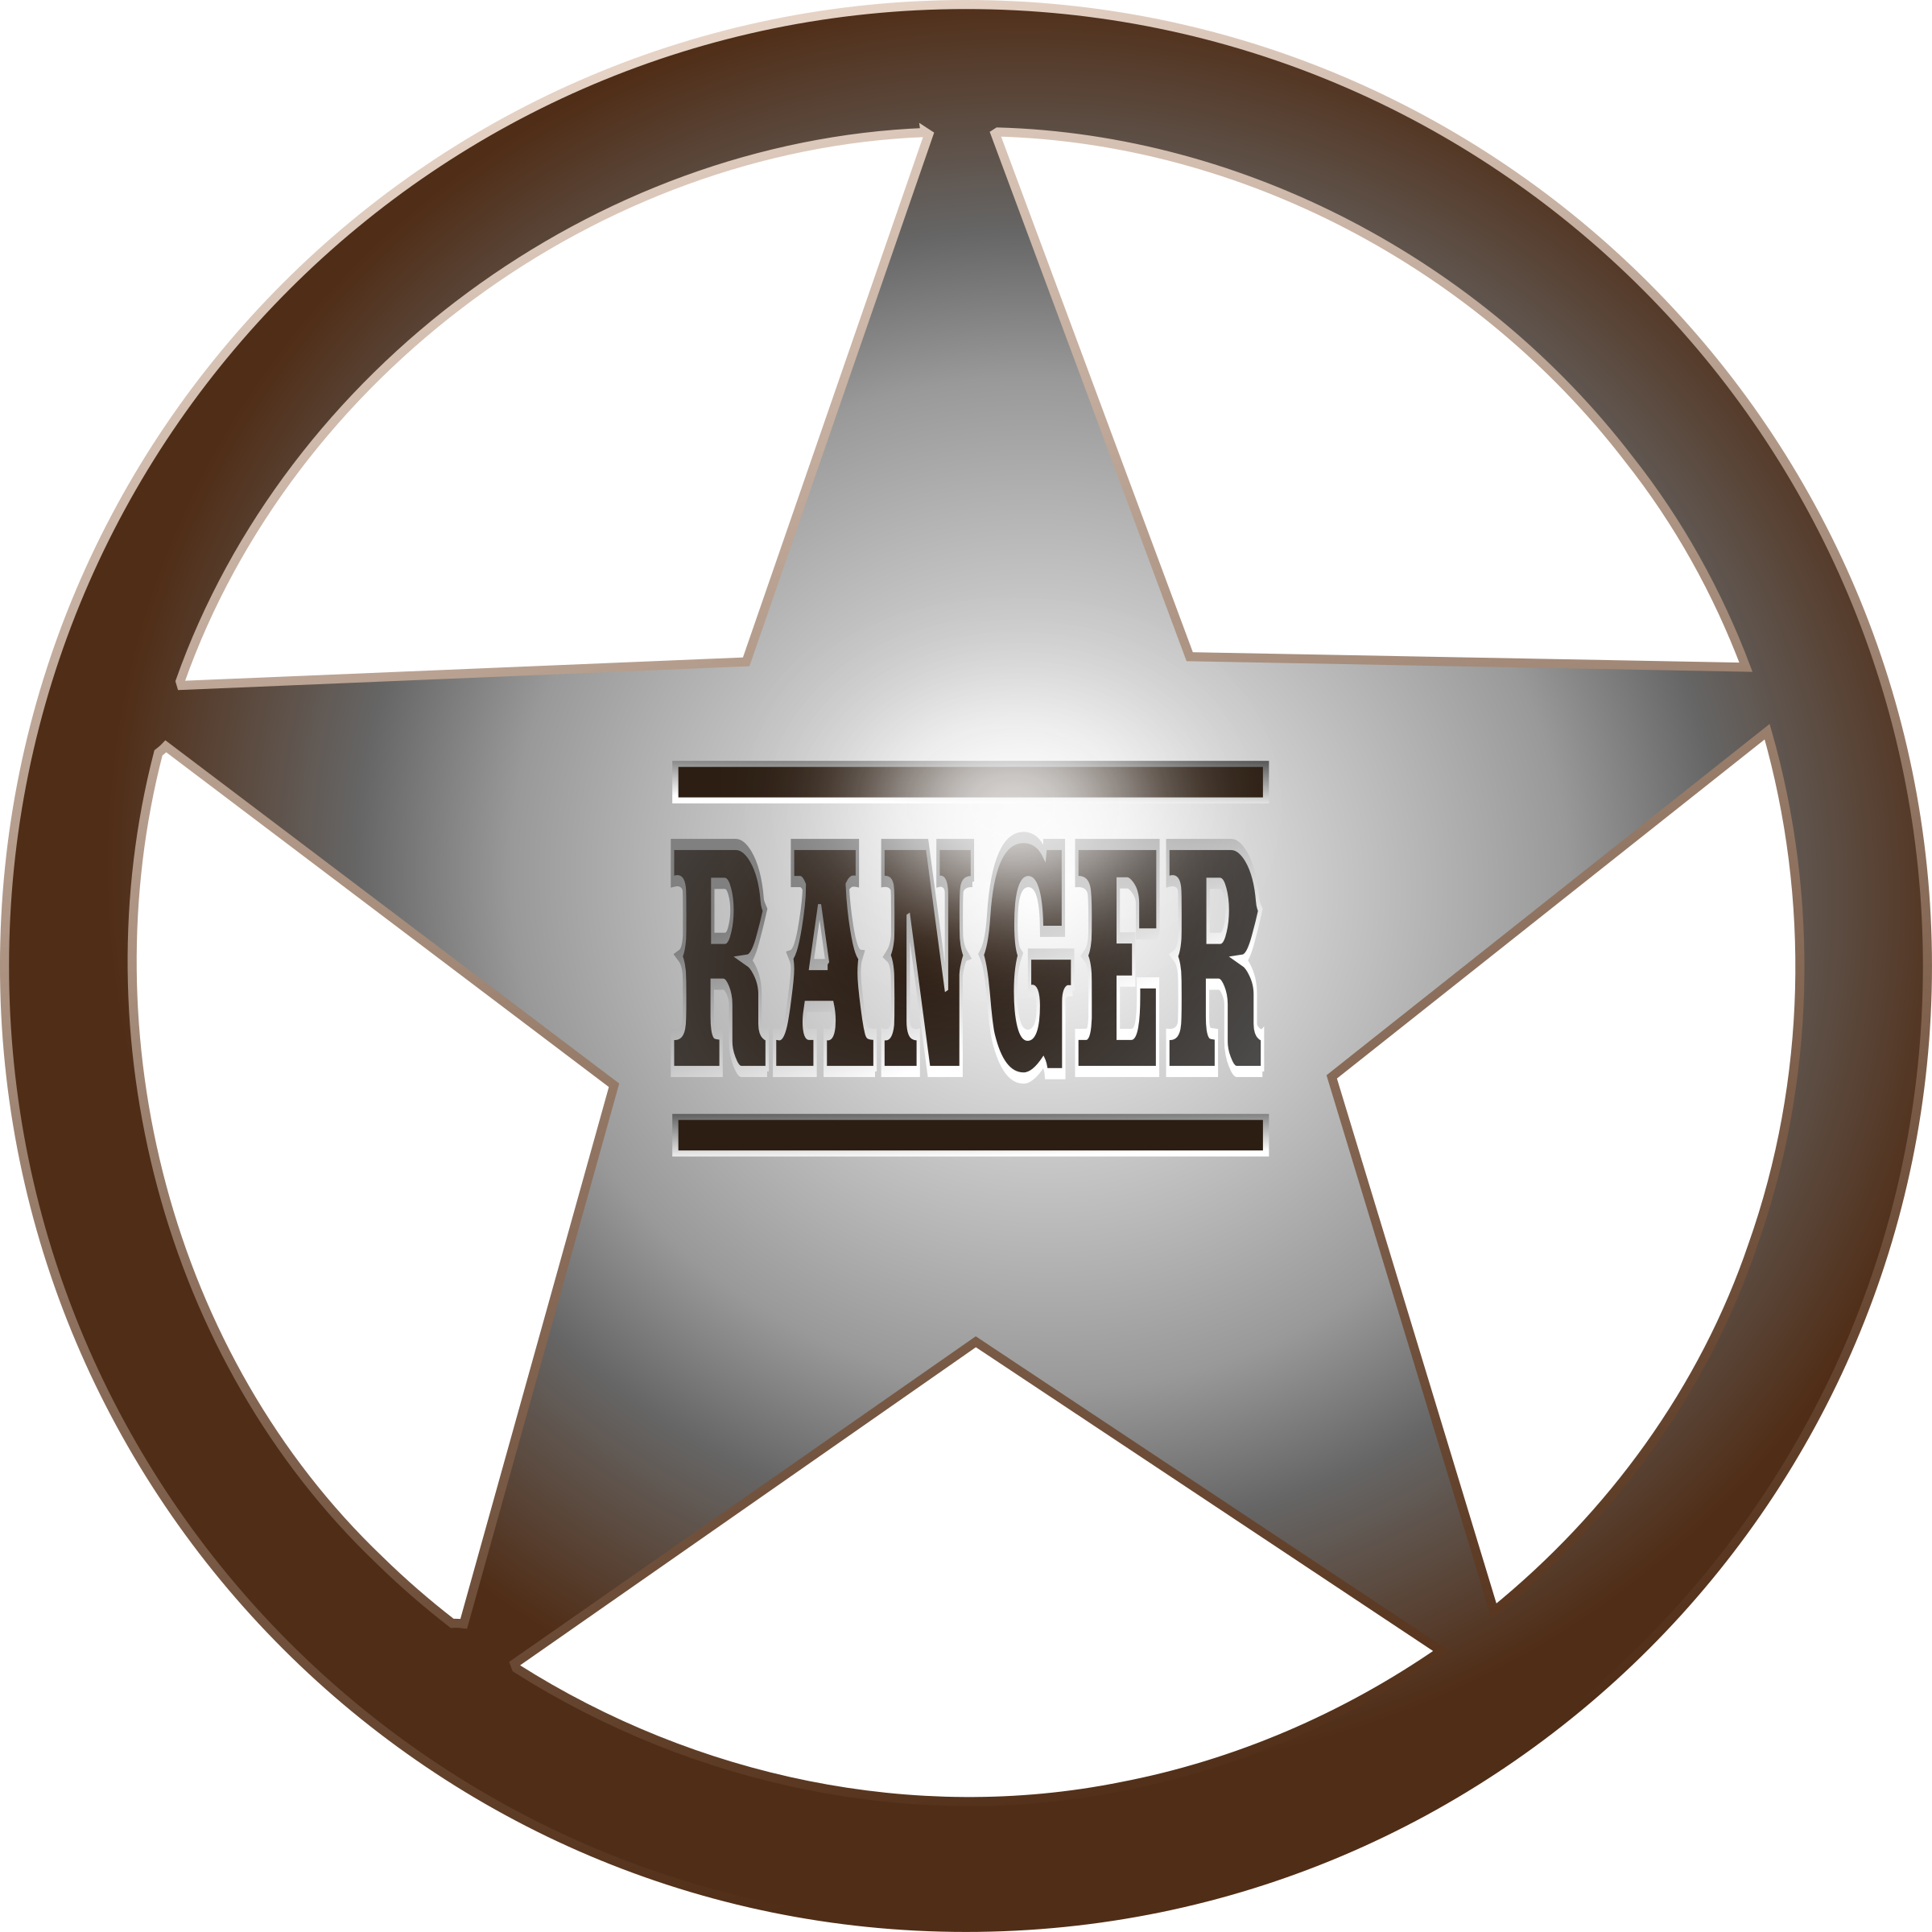 (Texas) Ranger Star by studio_hades